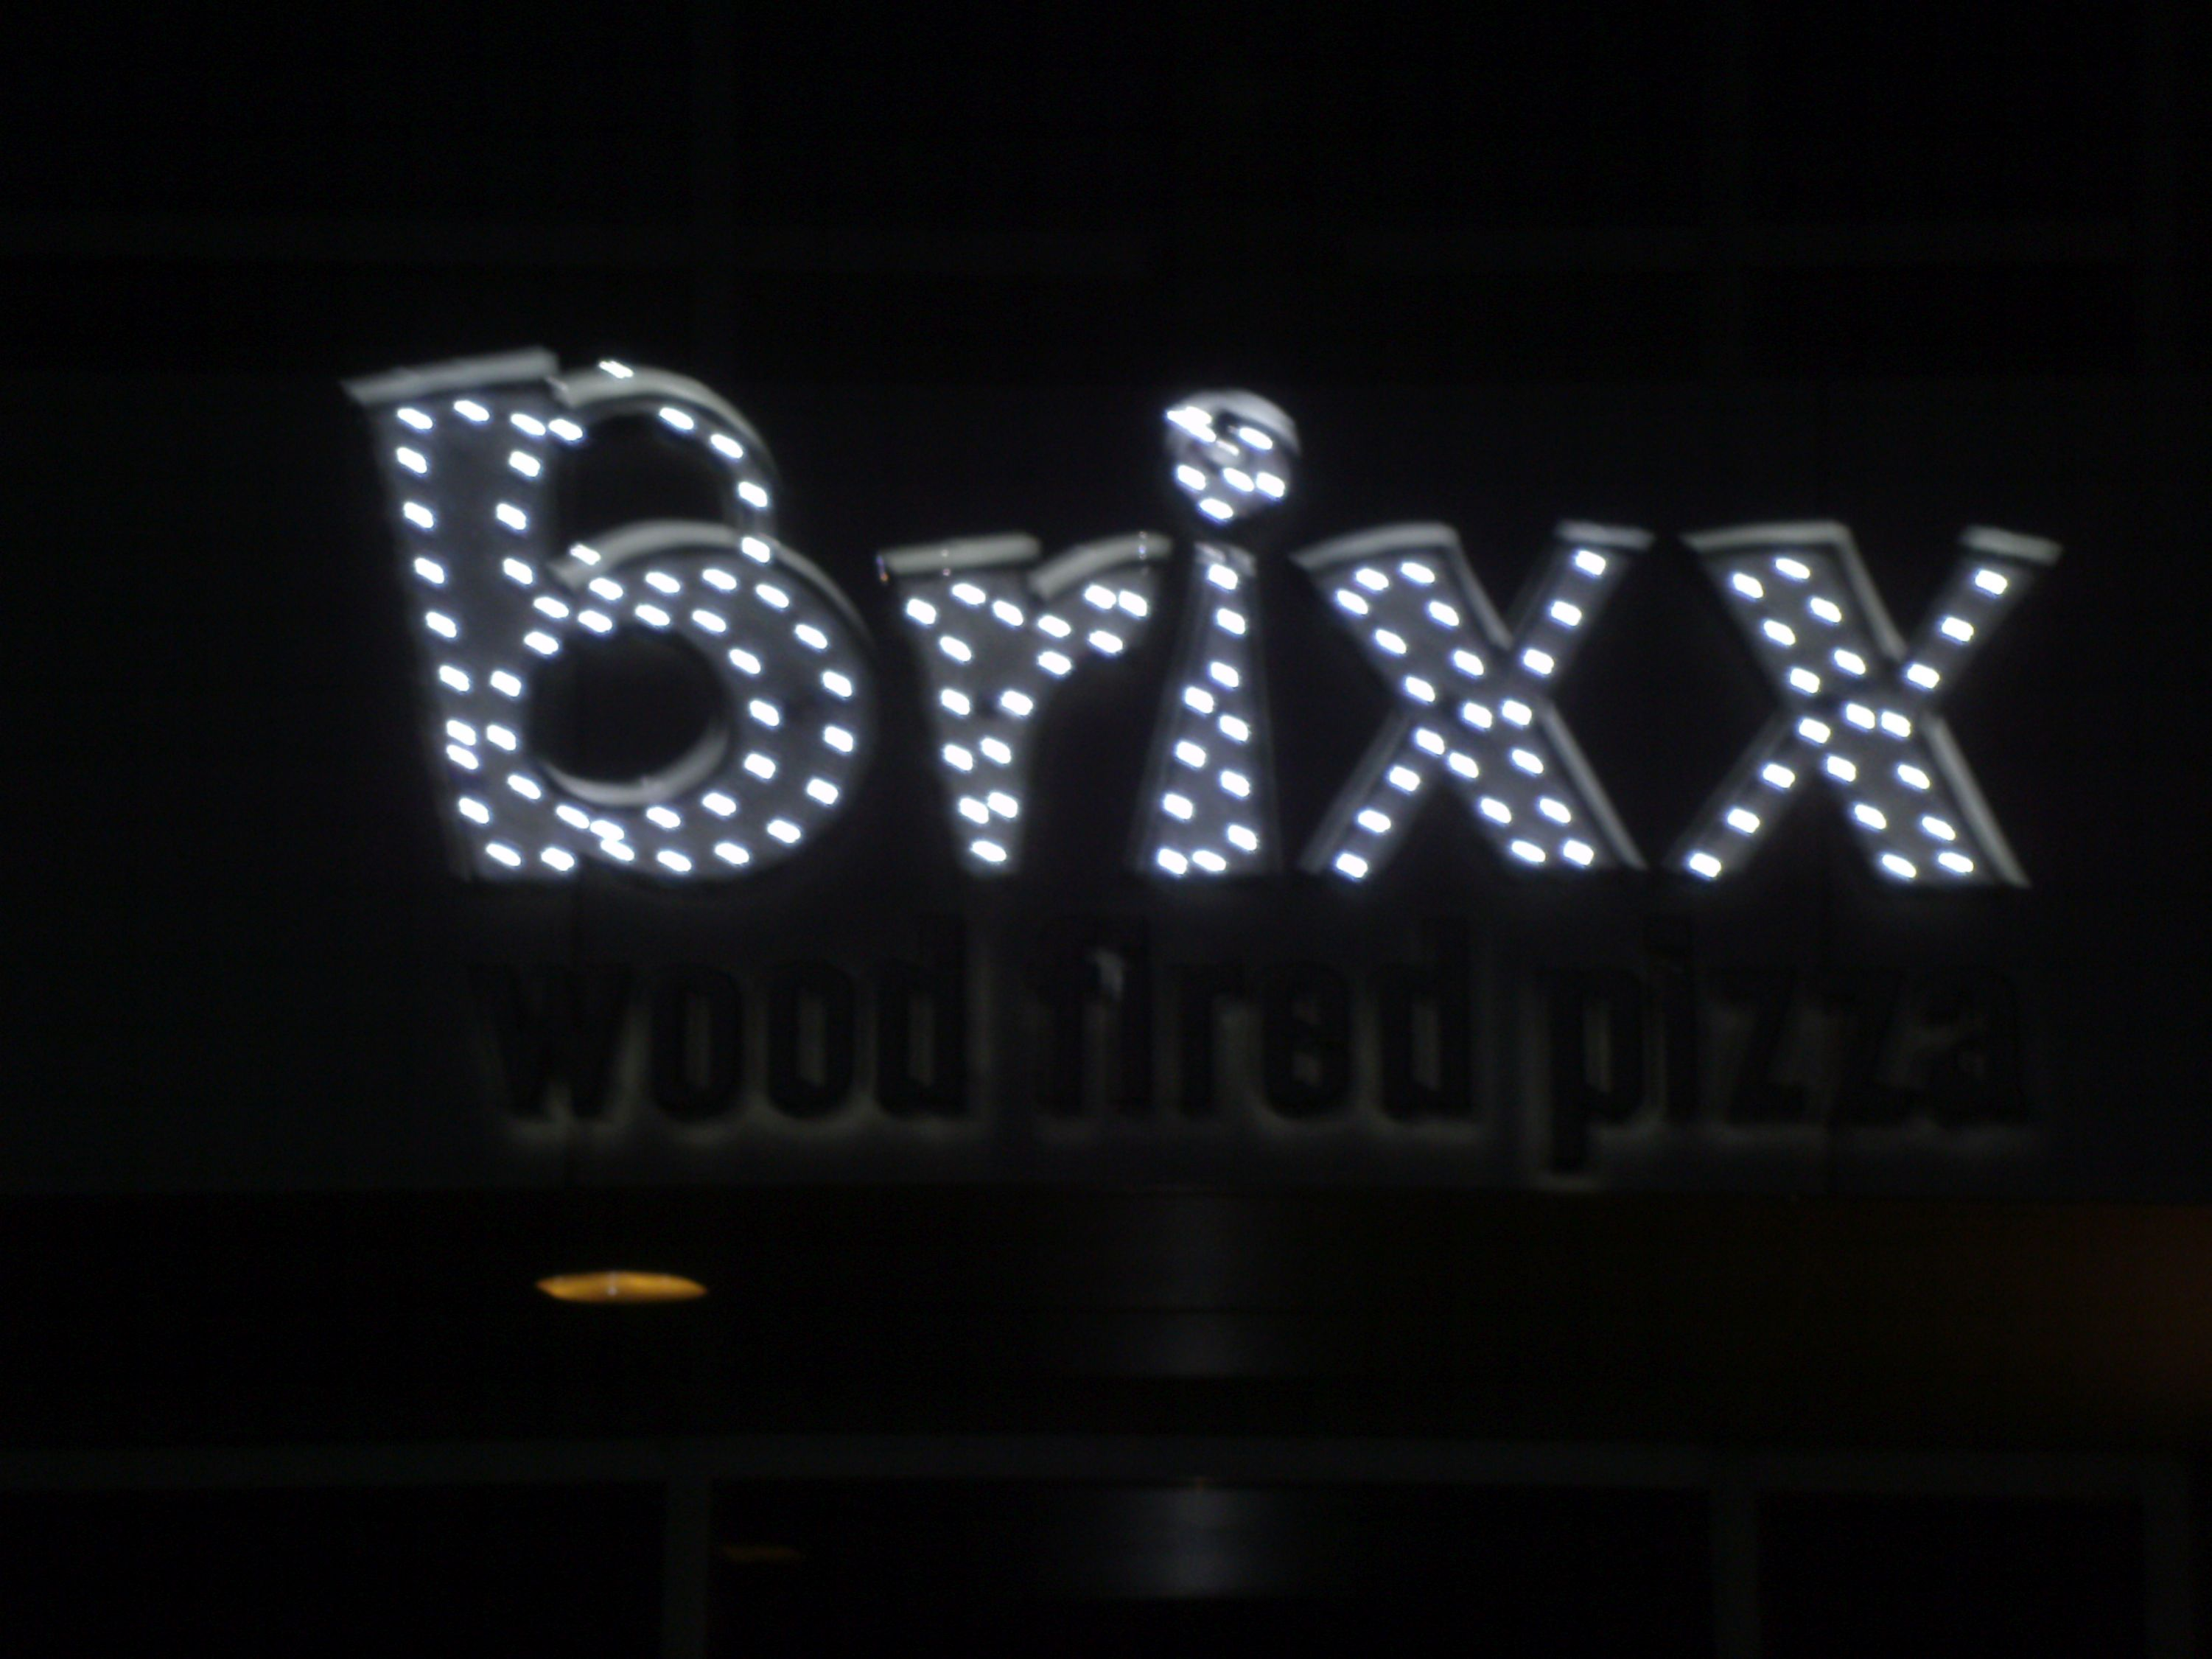 Brixx  lit channel letters